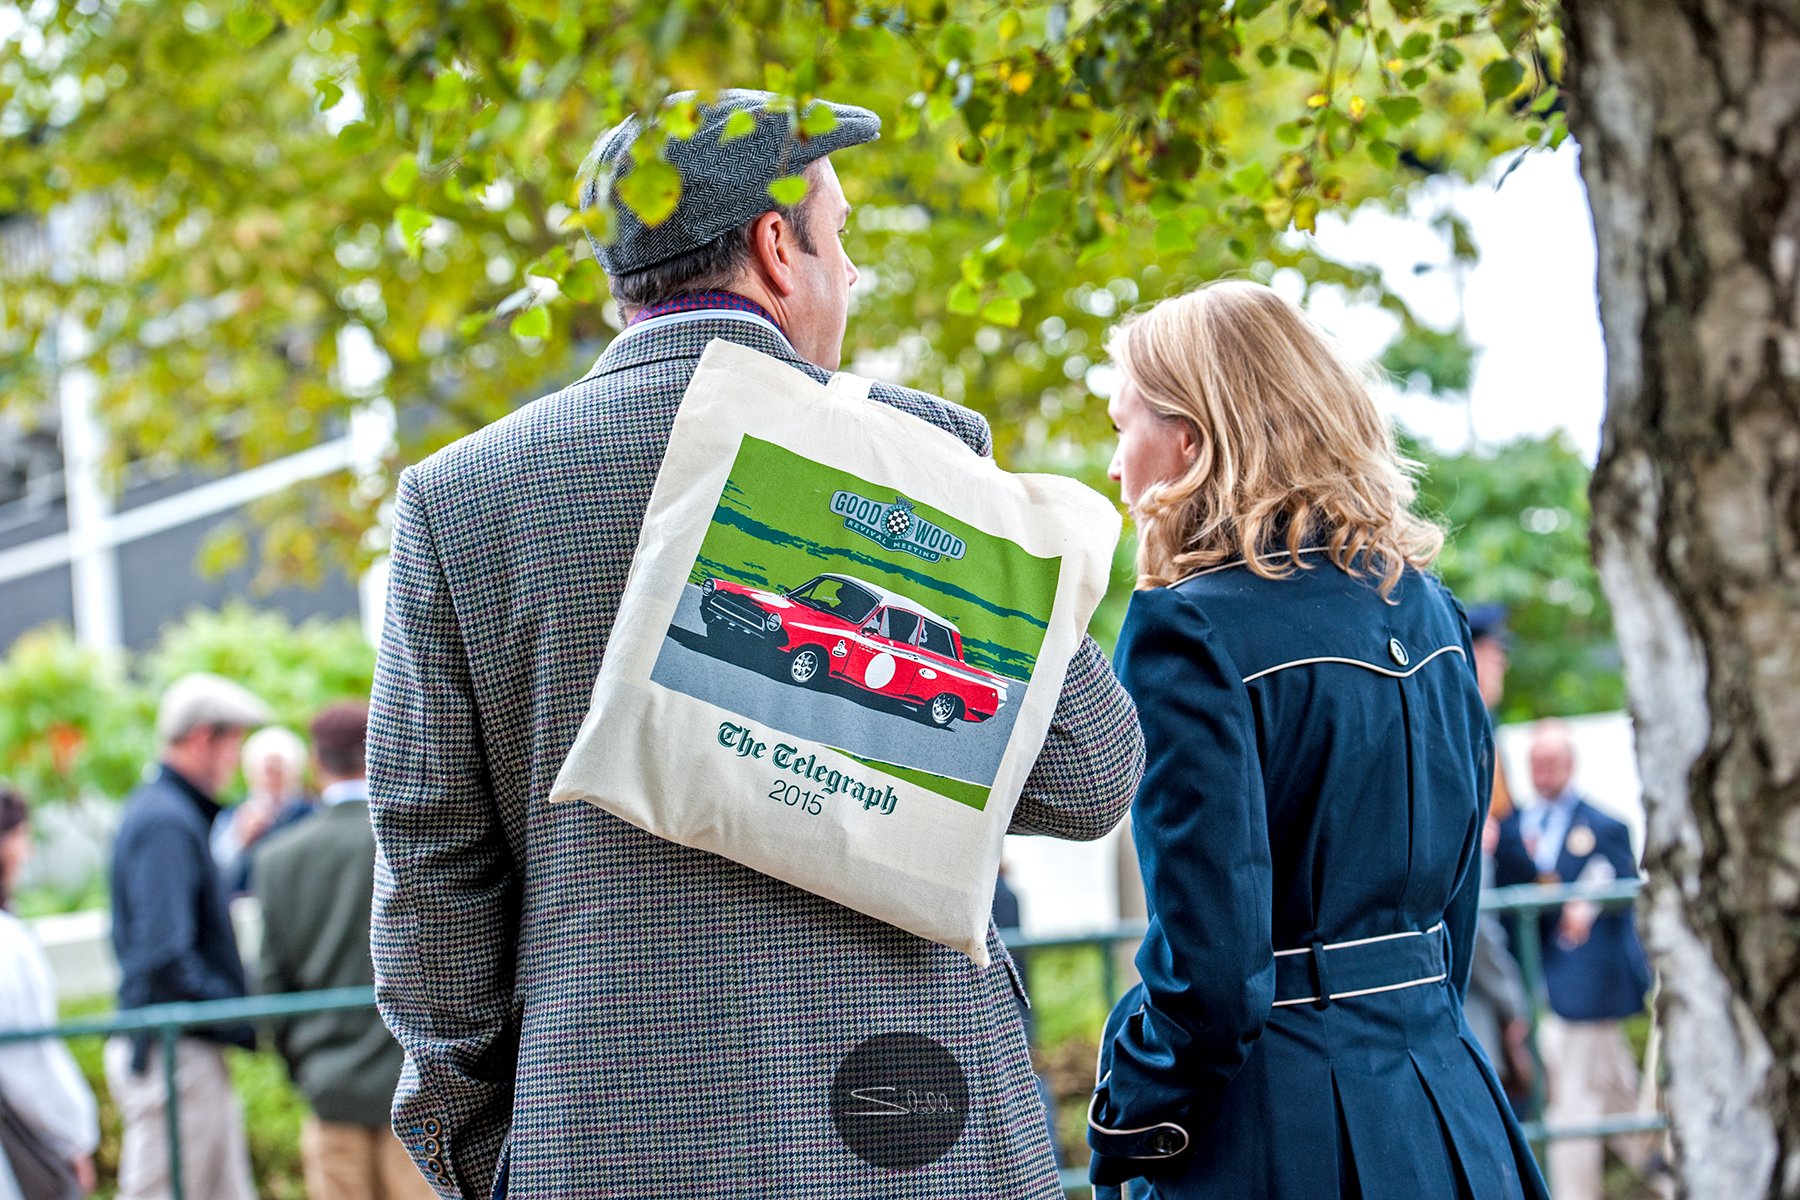 Stella Scordellis Goodwood Revival 2015 11 Watermarked.jpg